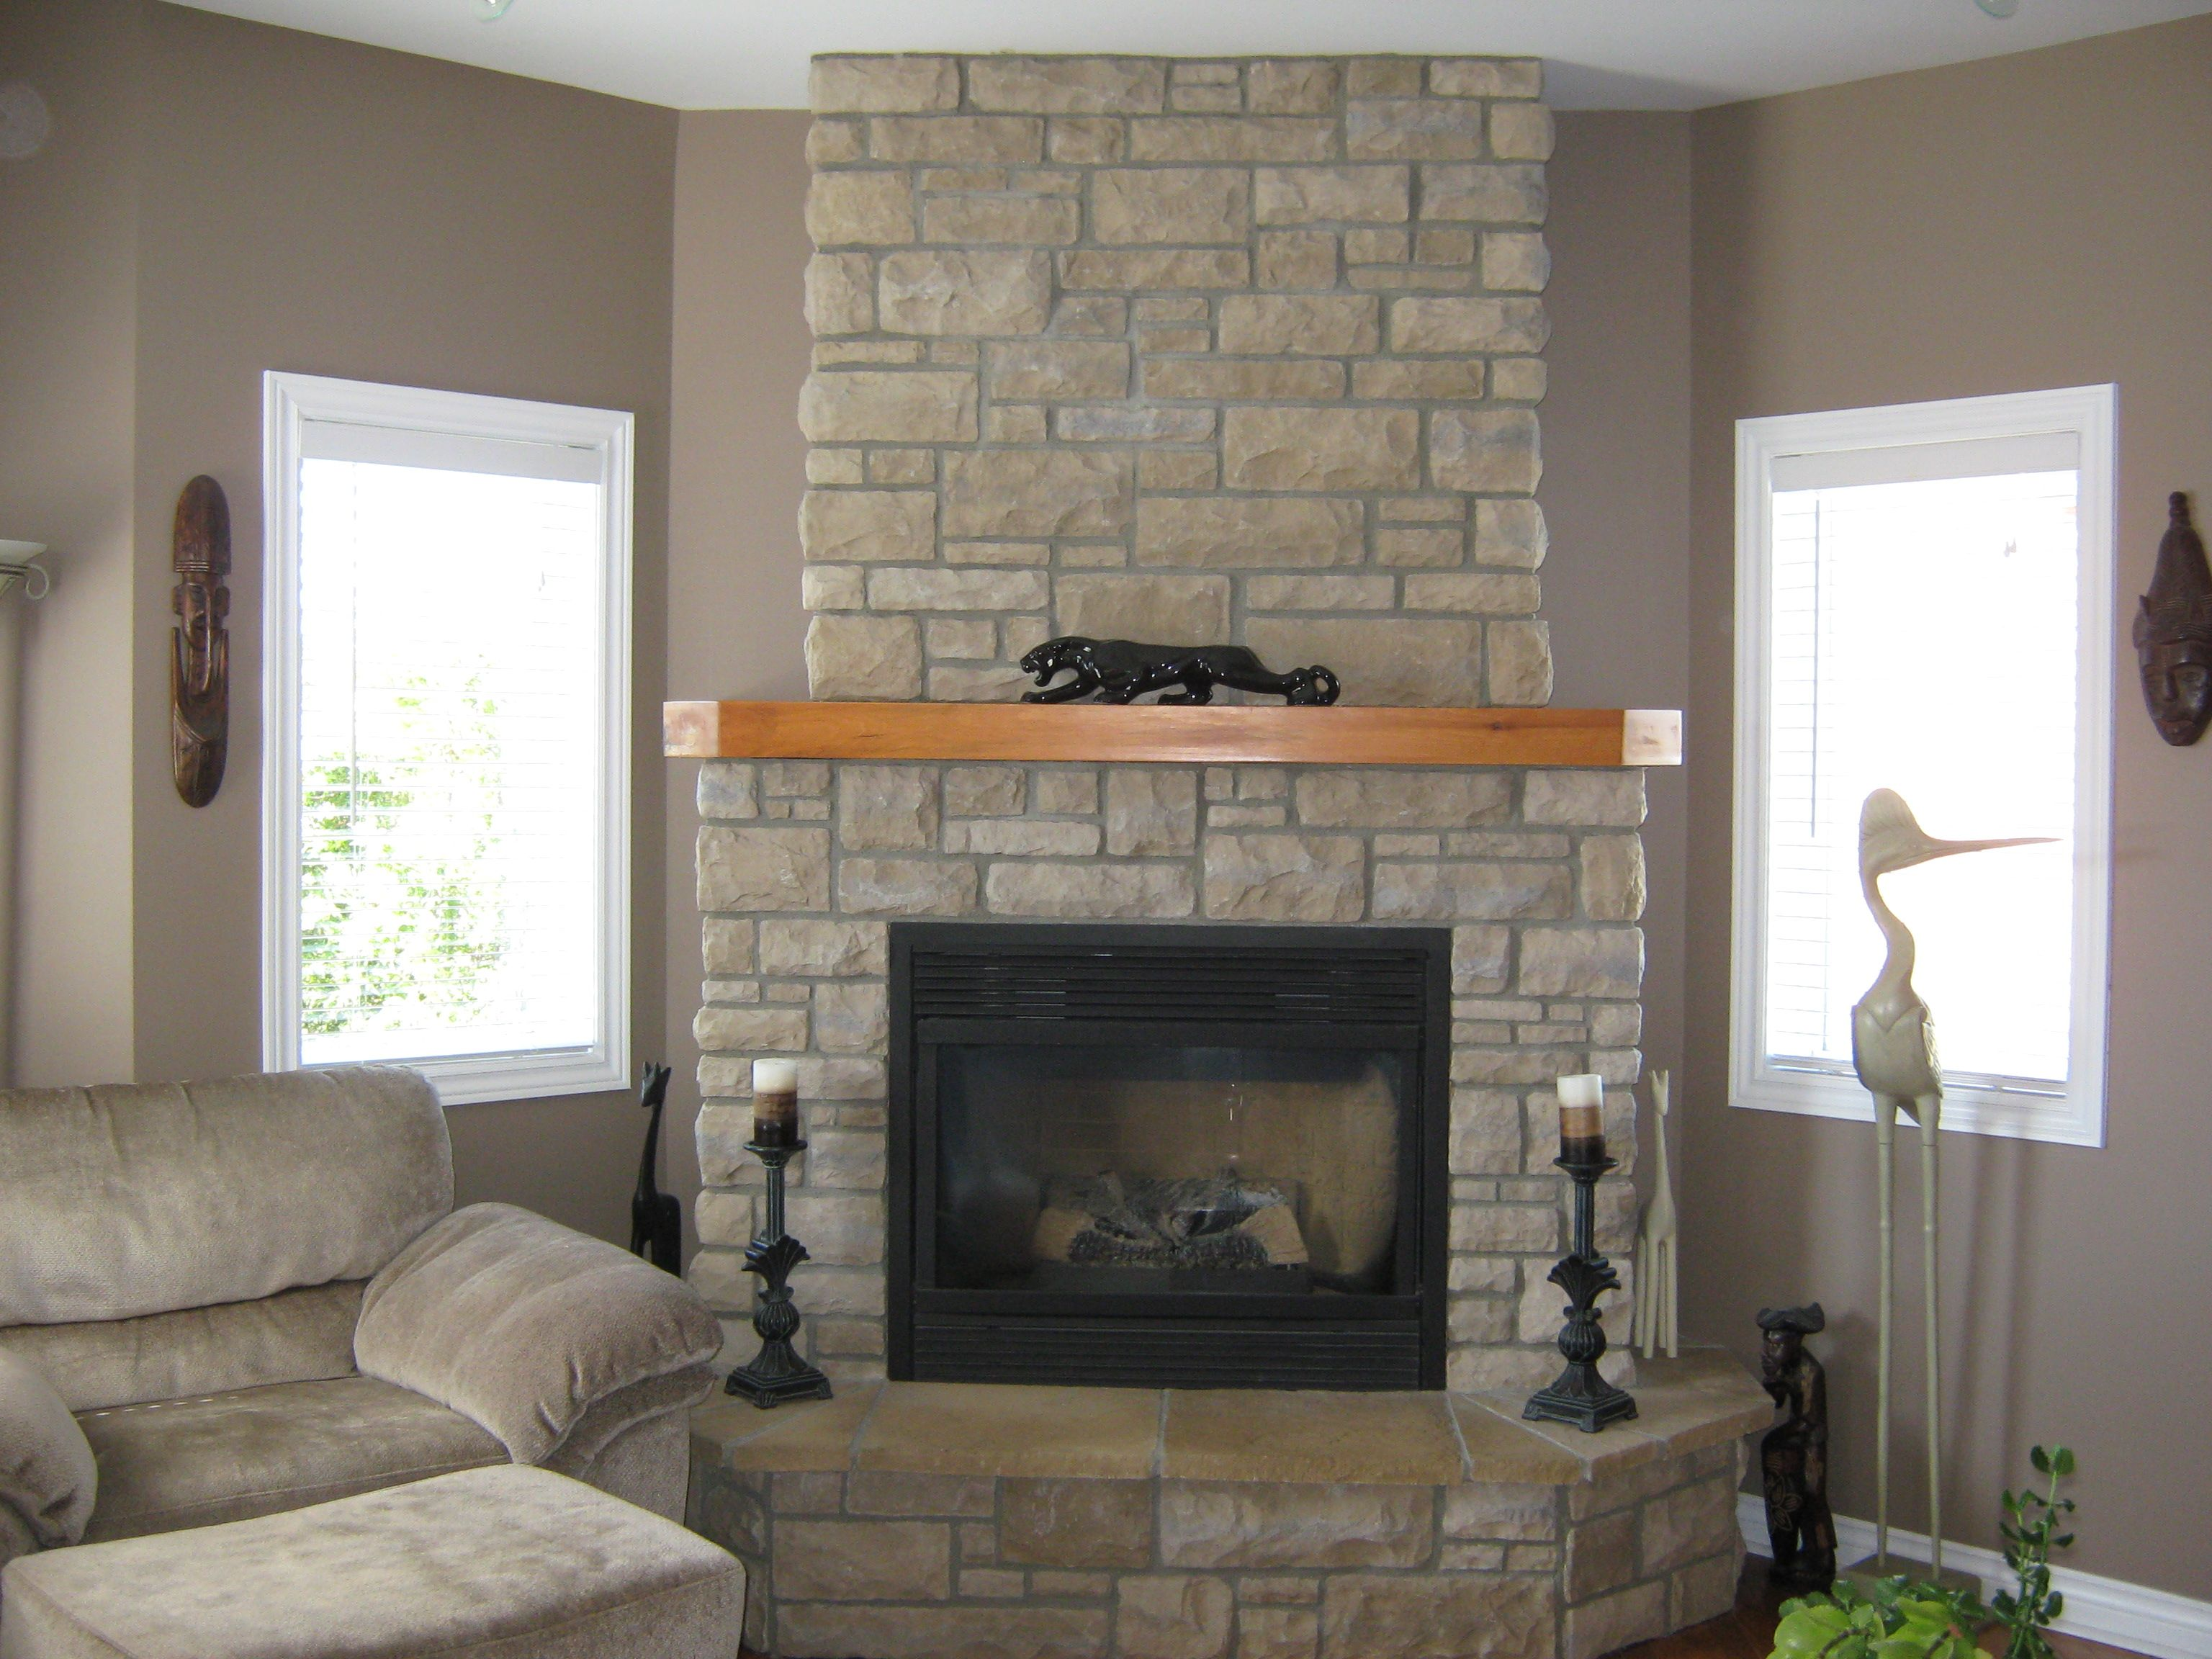 26 best Remodeling - Fireplace Surround images on Pinterest ...